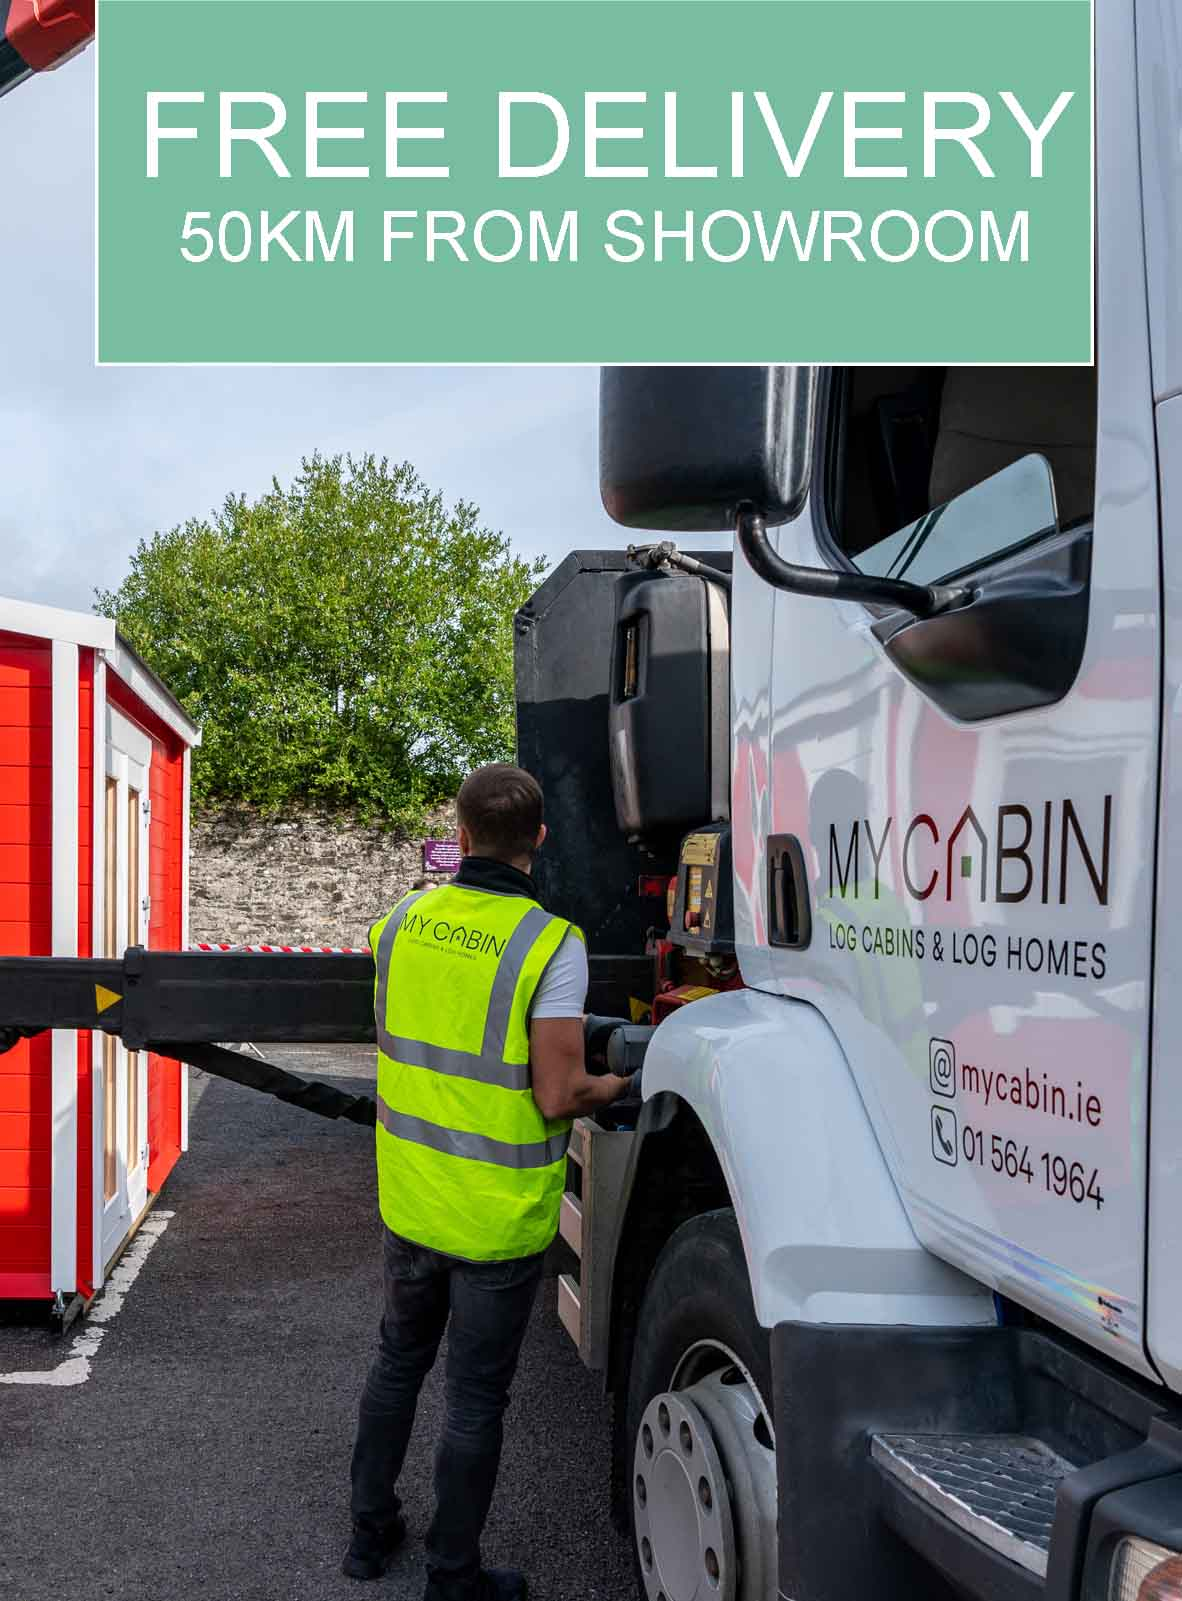 Mycabin Log Cabins and Log Homes Deliveries Dublin Cork